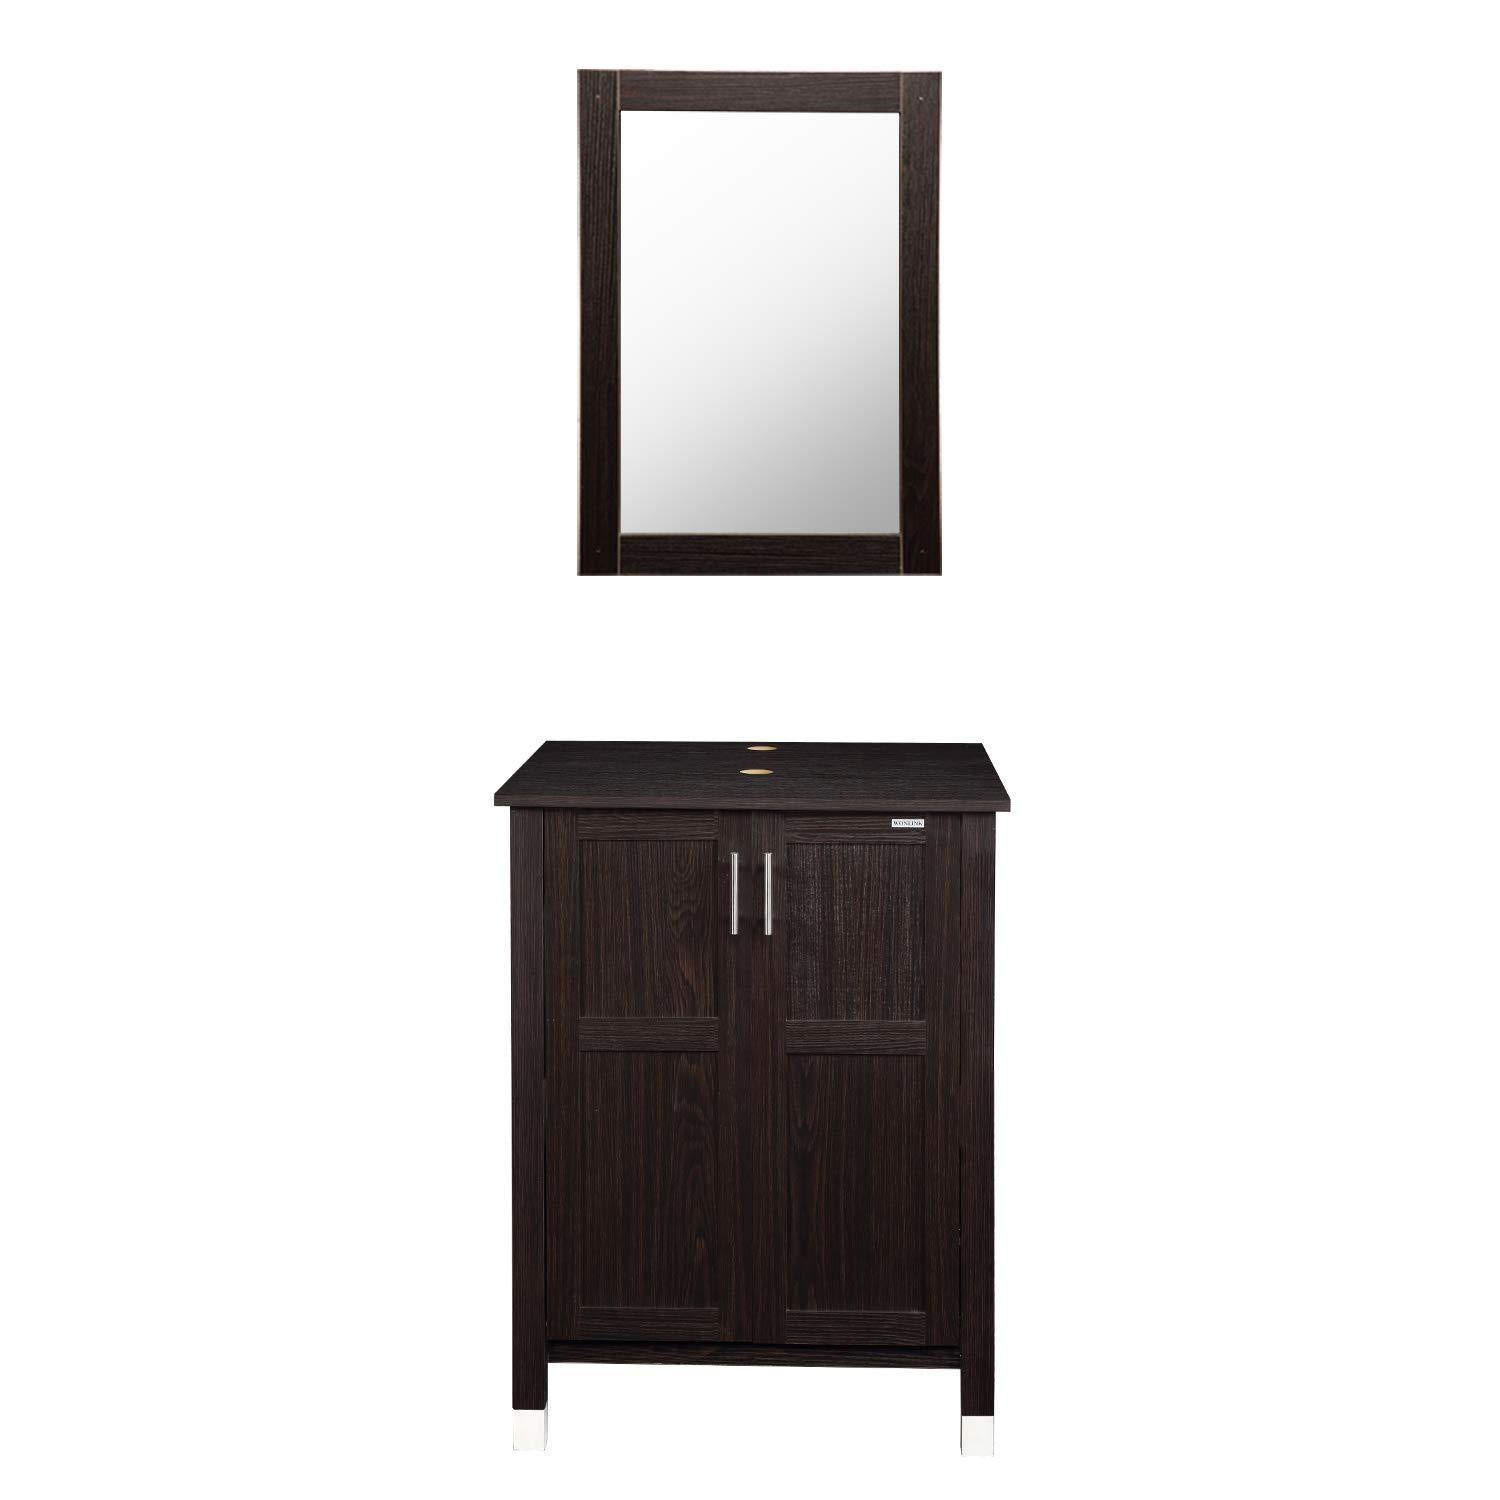 Shop here modern bathroom vanity and sink combo stand cabinet with vanity mirror single mdf cabinet with blue glass vessel sink round bowl